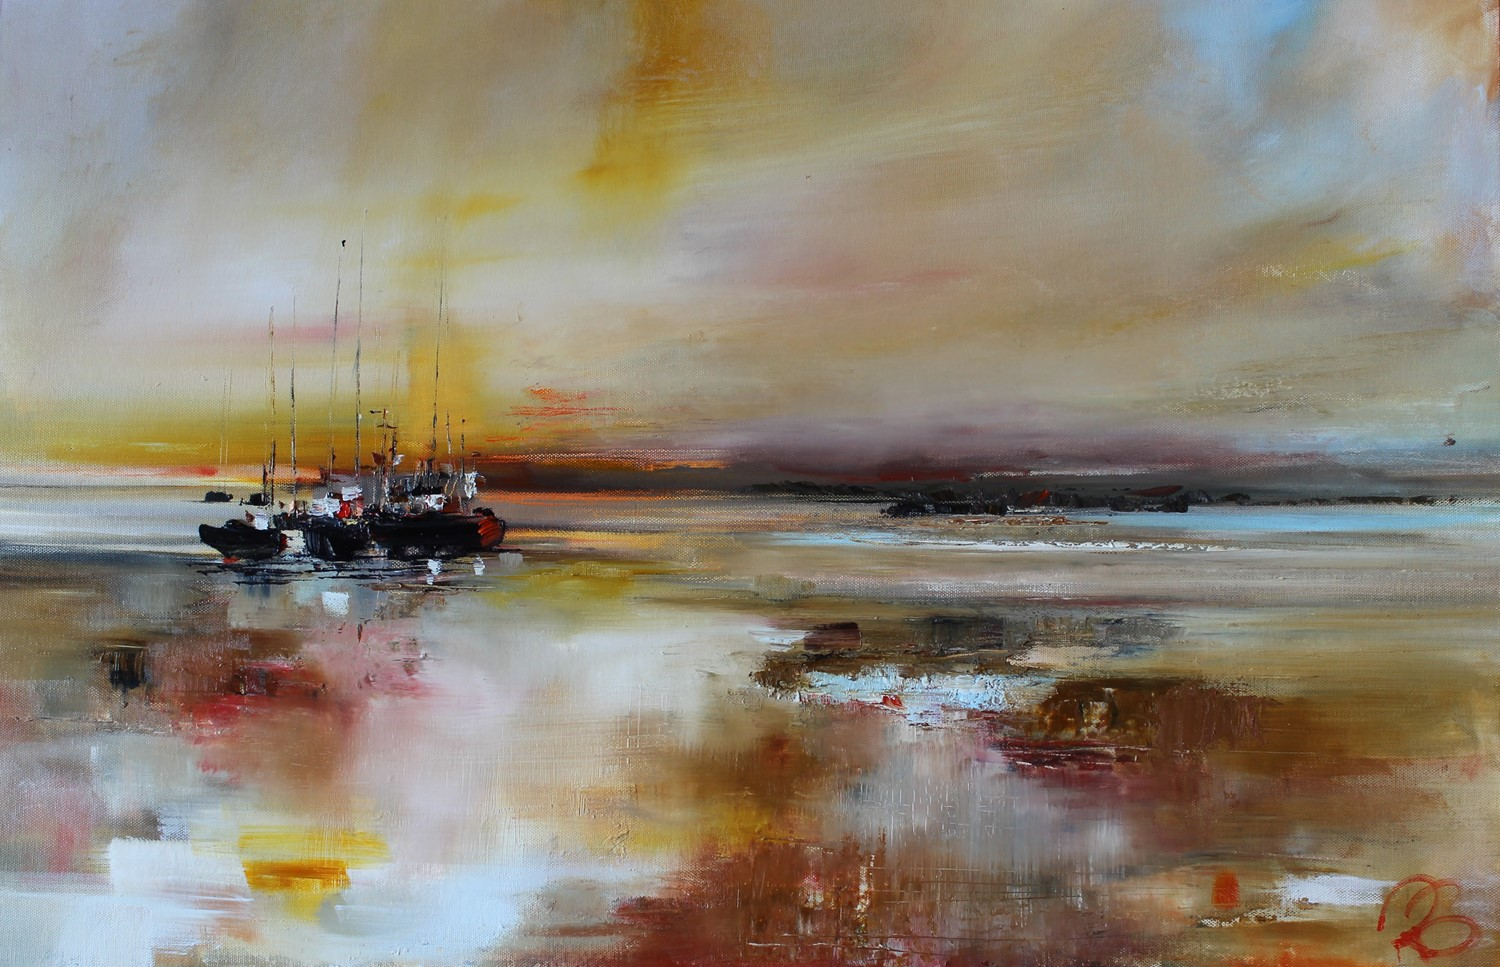 'Heading for Home ' by artist Rosanne Barr